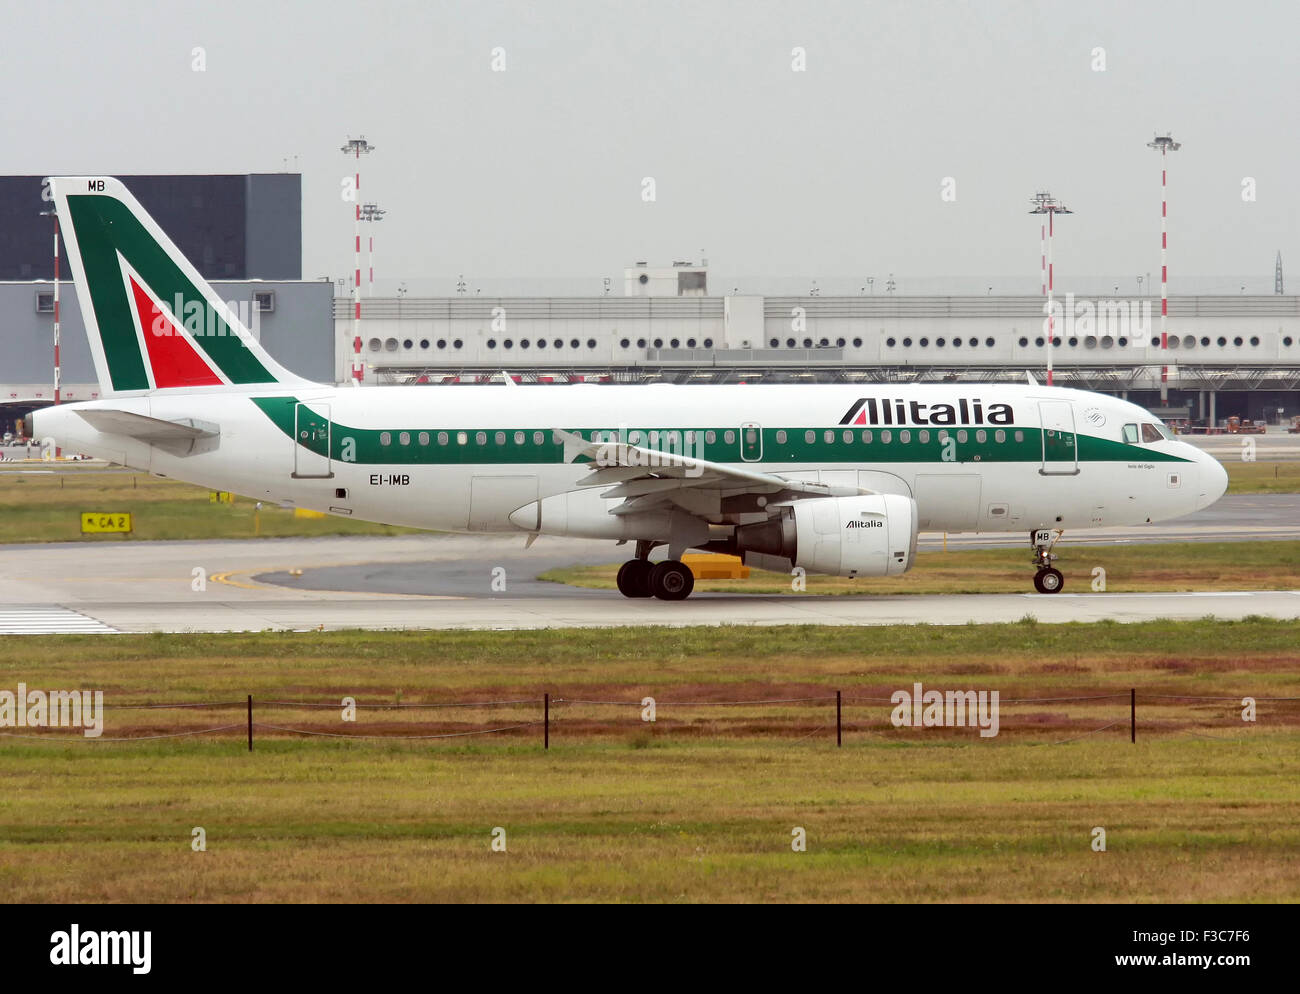 Alitalia Airbus A319-112. Photographed at Linate airport, Milan, Italy Stock Photo